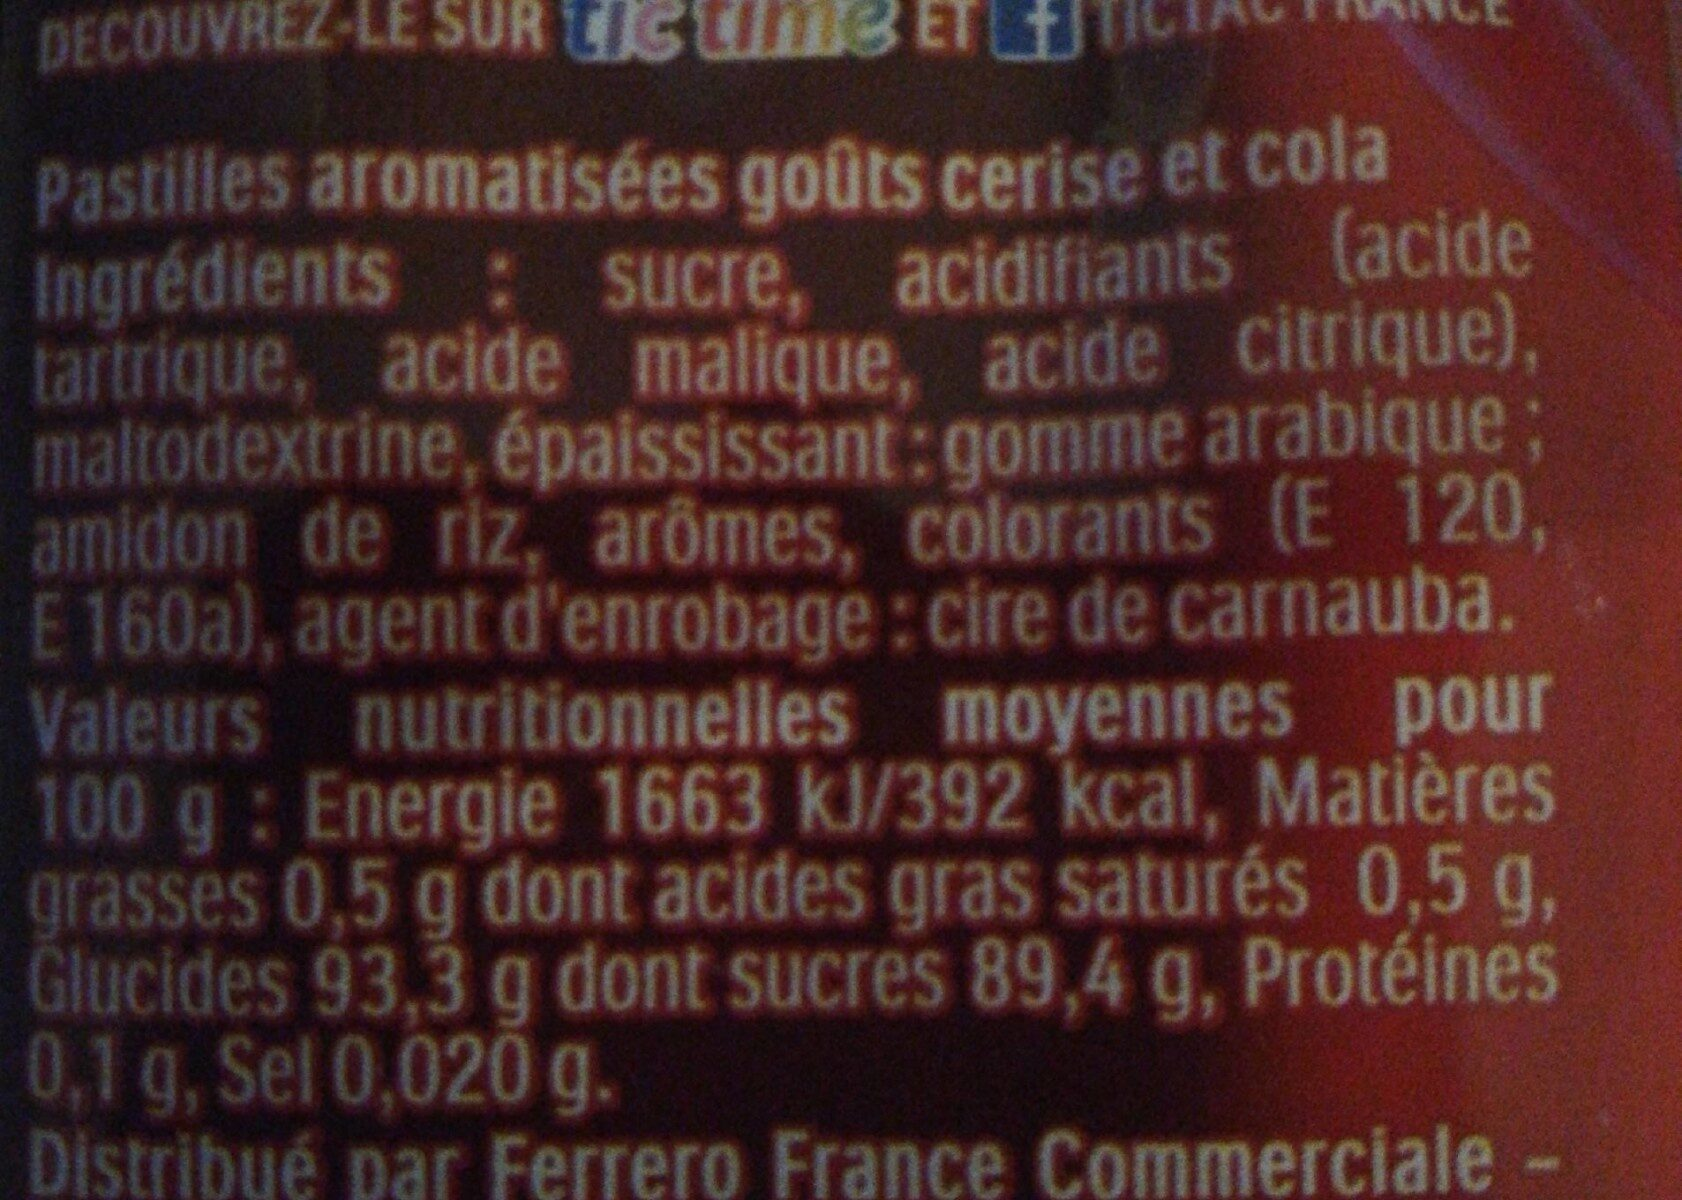 Tic Tac cerise-cola - Nutrition facts - fr